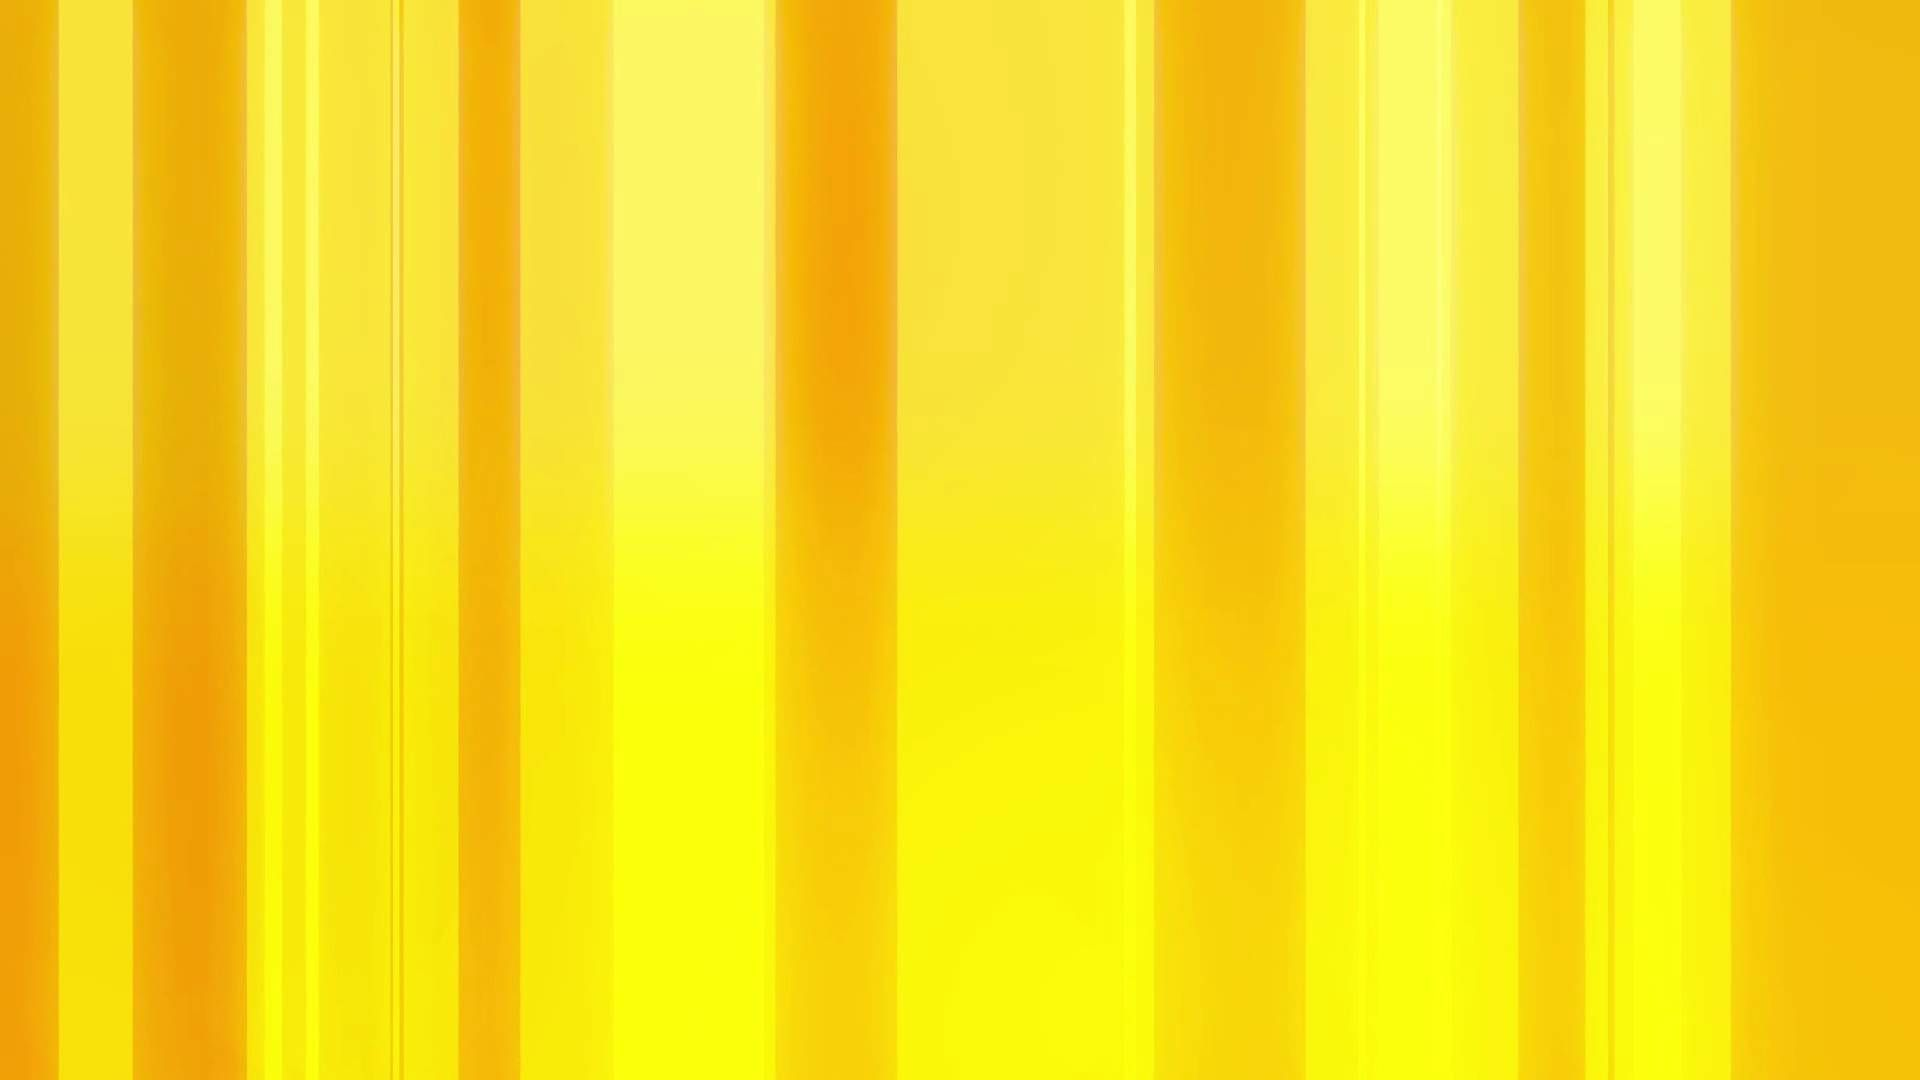 Yellow backgrounds image wallpaper hd wallpapers pinterest yellow backgrounds image wallpaper thecheapjerseys Images